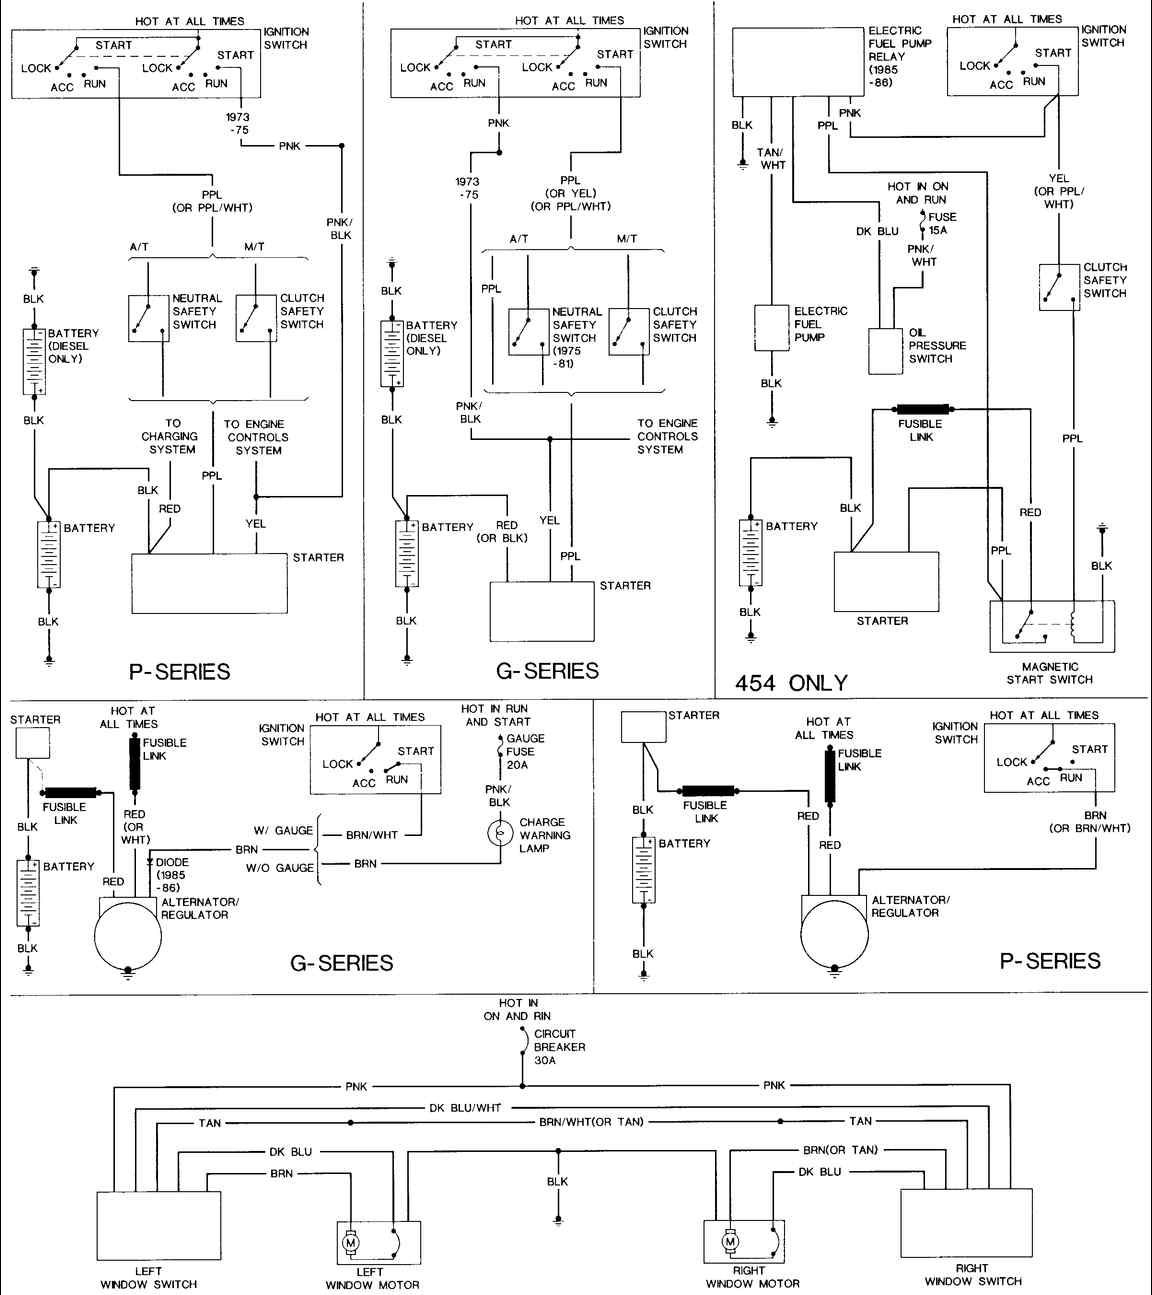 0c73623a181dc376dbb4777e2029d285 85 chevy truck wiring diagram 85 chevy van the steering column 1979 chevy truck wiring schematic at gsmx.co